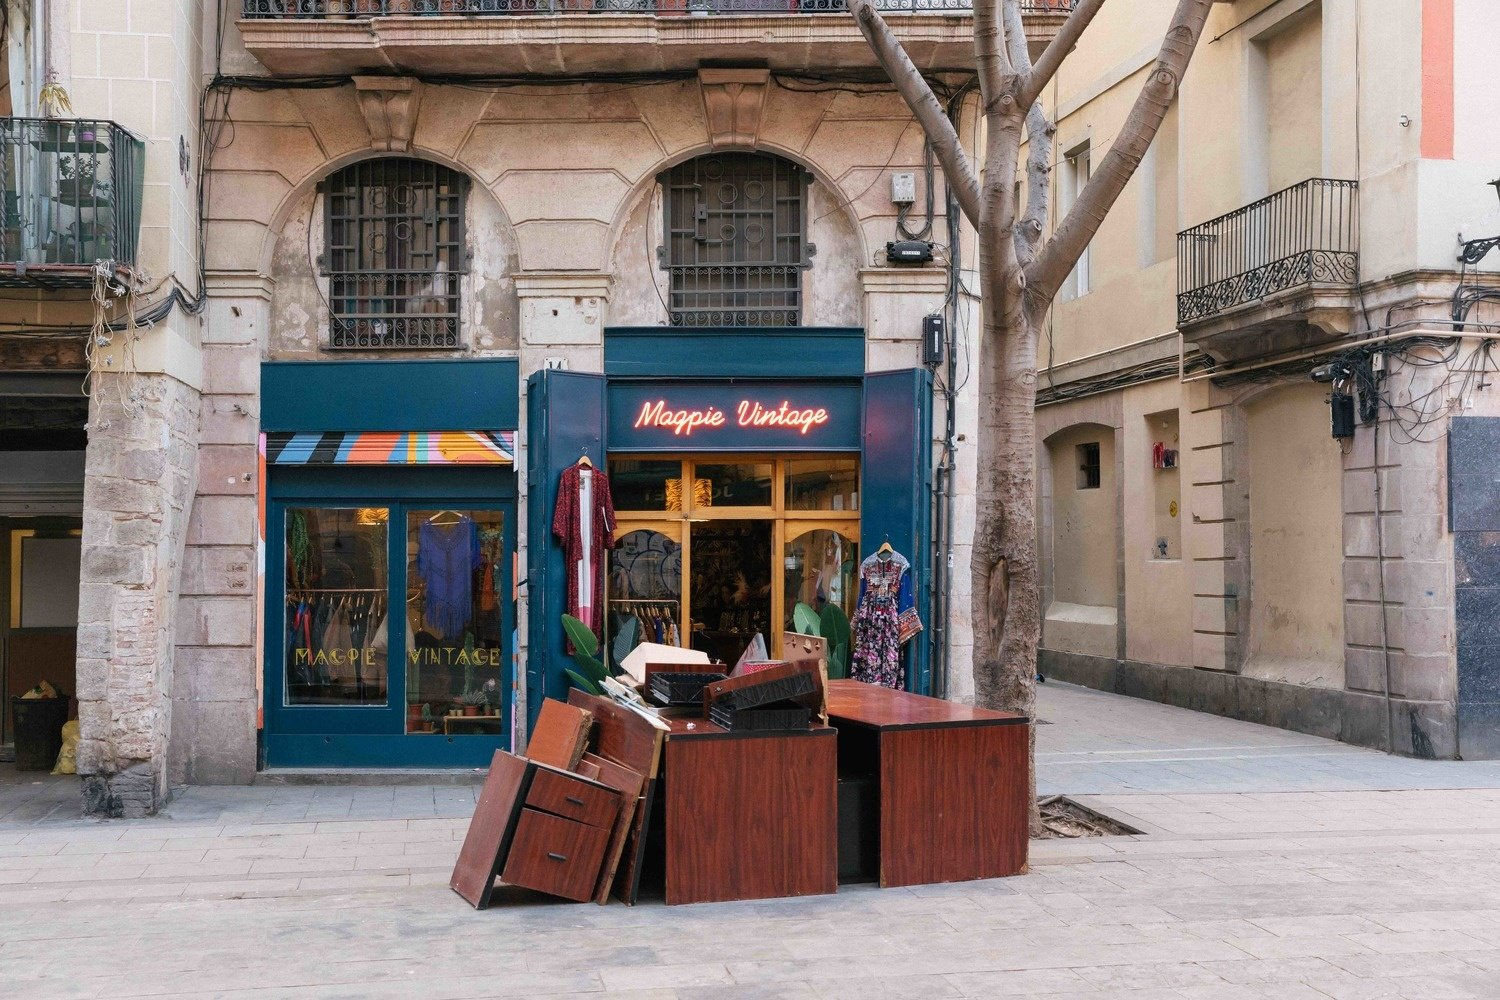 Cheap activities to do in Barcelona